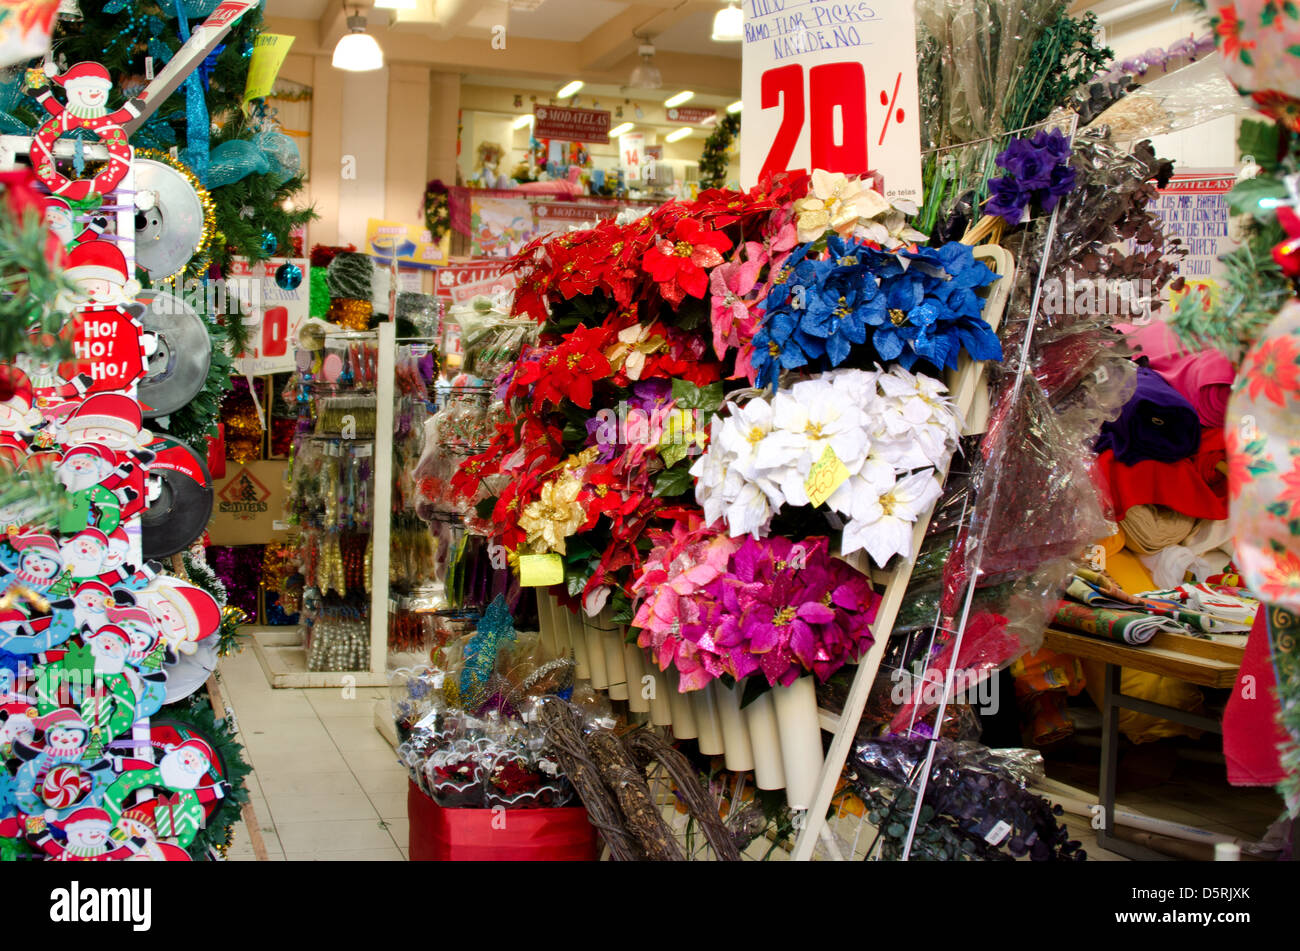 Store Having Sale On Christmas Decorations Including Blue Purple And Red Faux Poinsettias Oaxaca Mexico